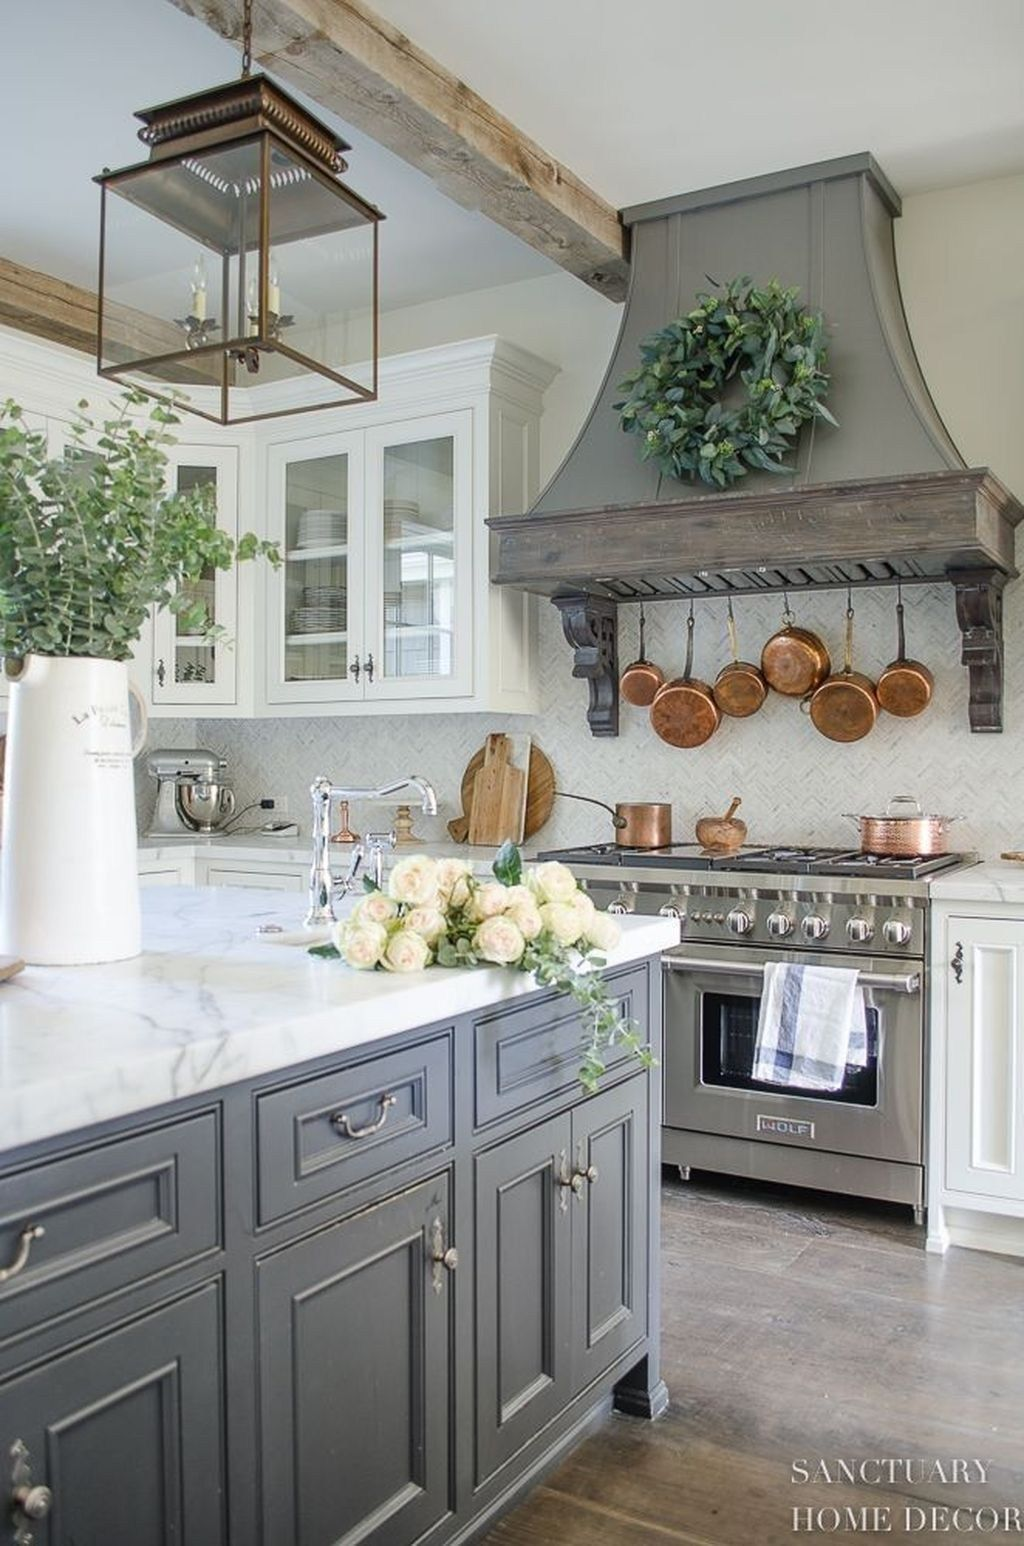 48 The Best French Country Style Kitchen Decor Ideas – pickndecor.com/design